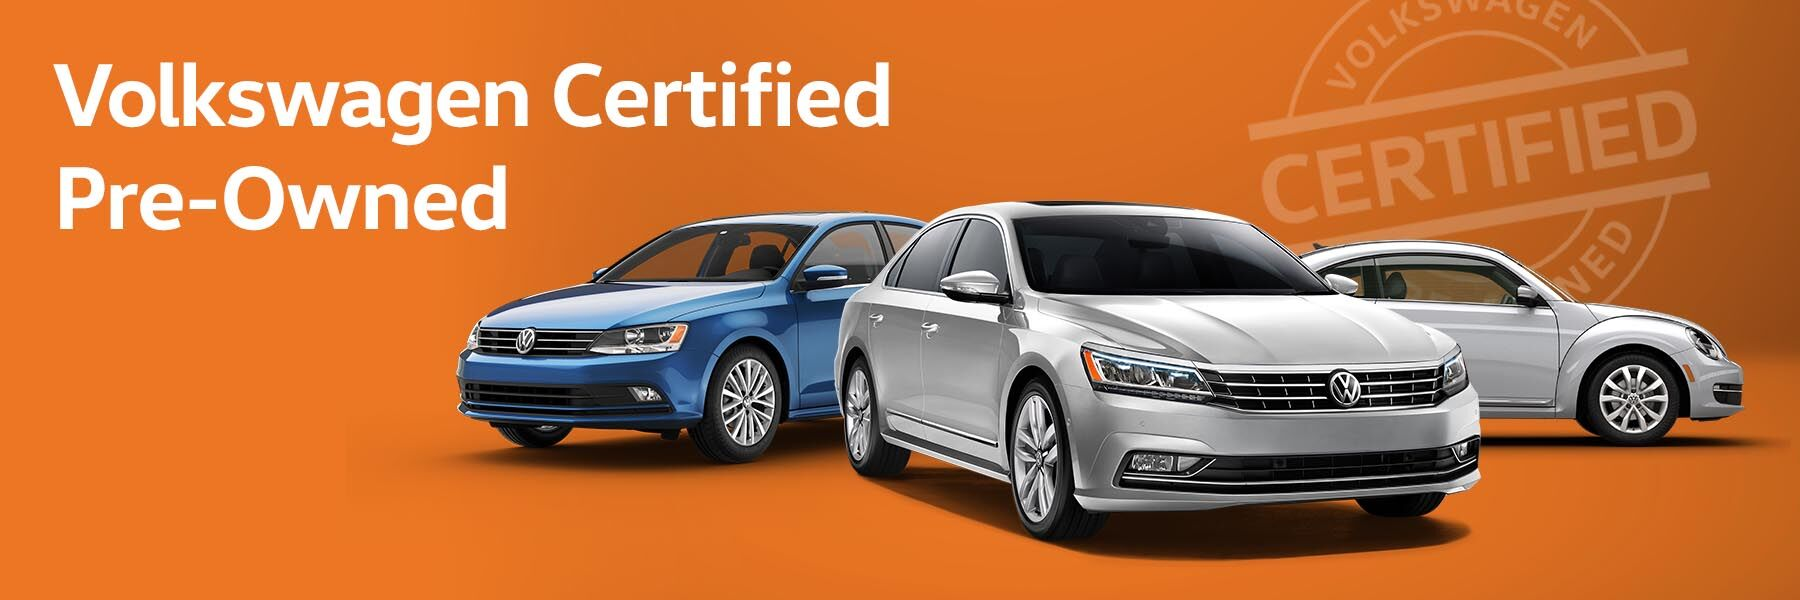 Volkswagen Certified Pre-Owned in City of Industry, CA